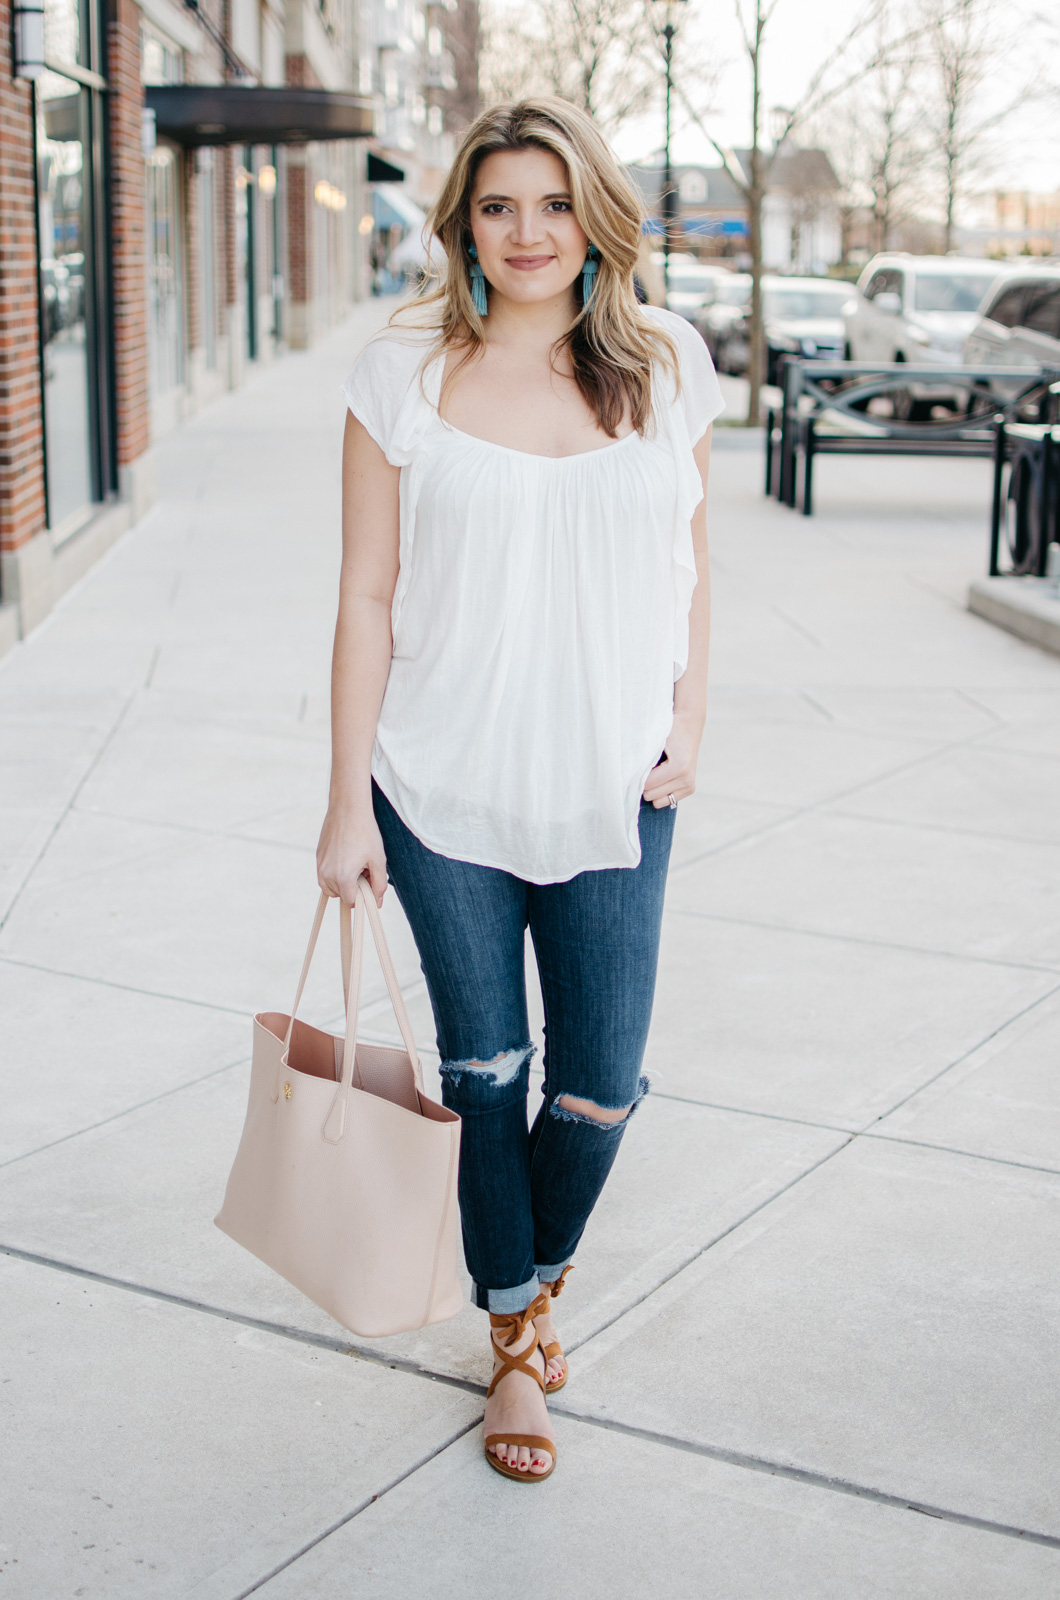 spring outfit ideas - white flutter sleeve top with ruffles | Click through for more spring outfit ideas or to shop the look! www.bylaurenm.com